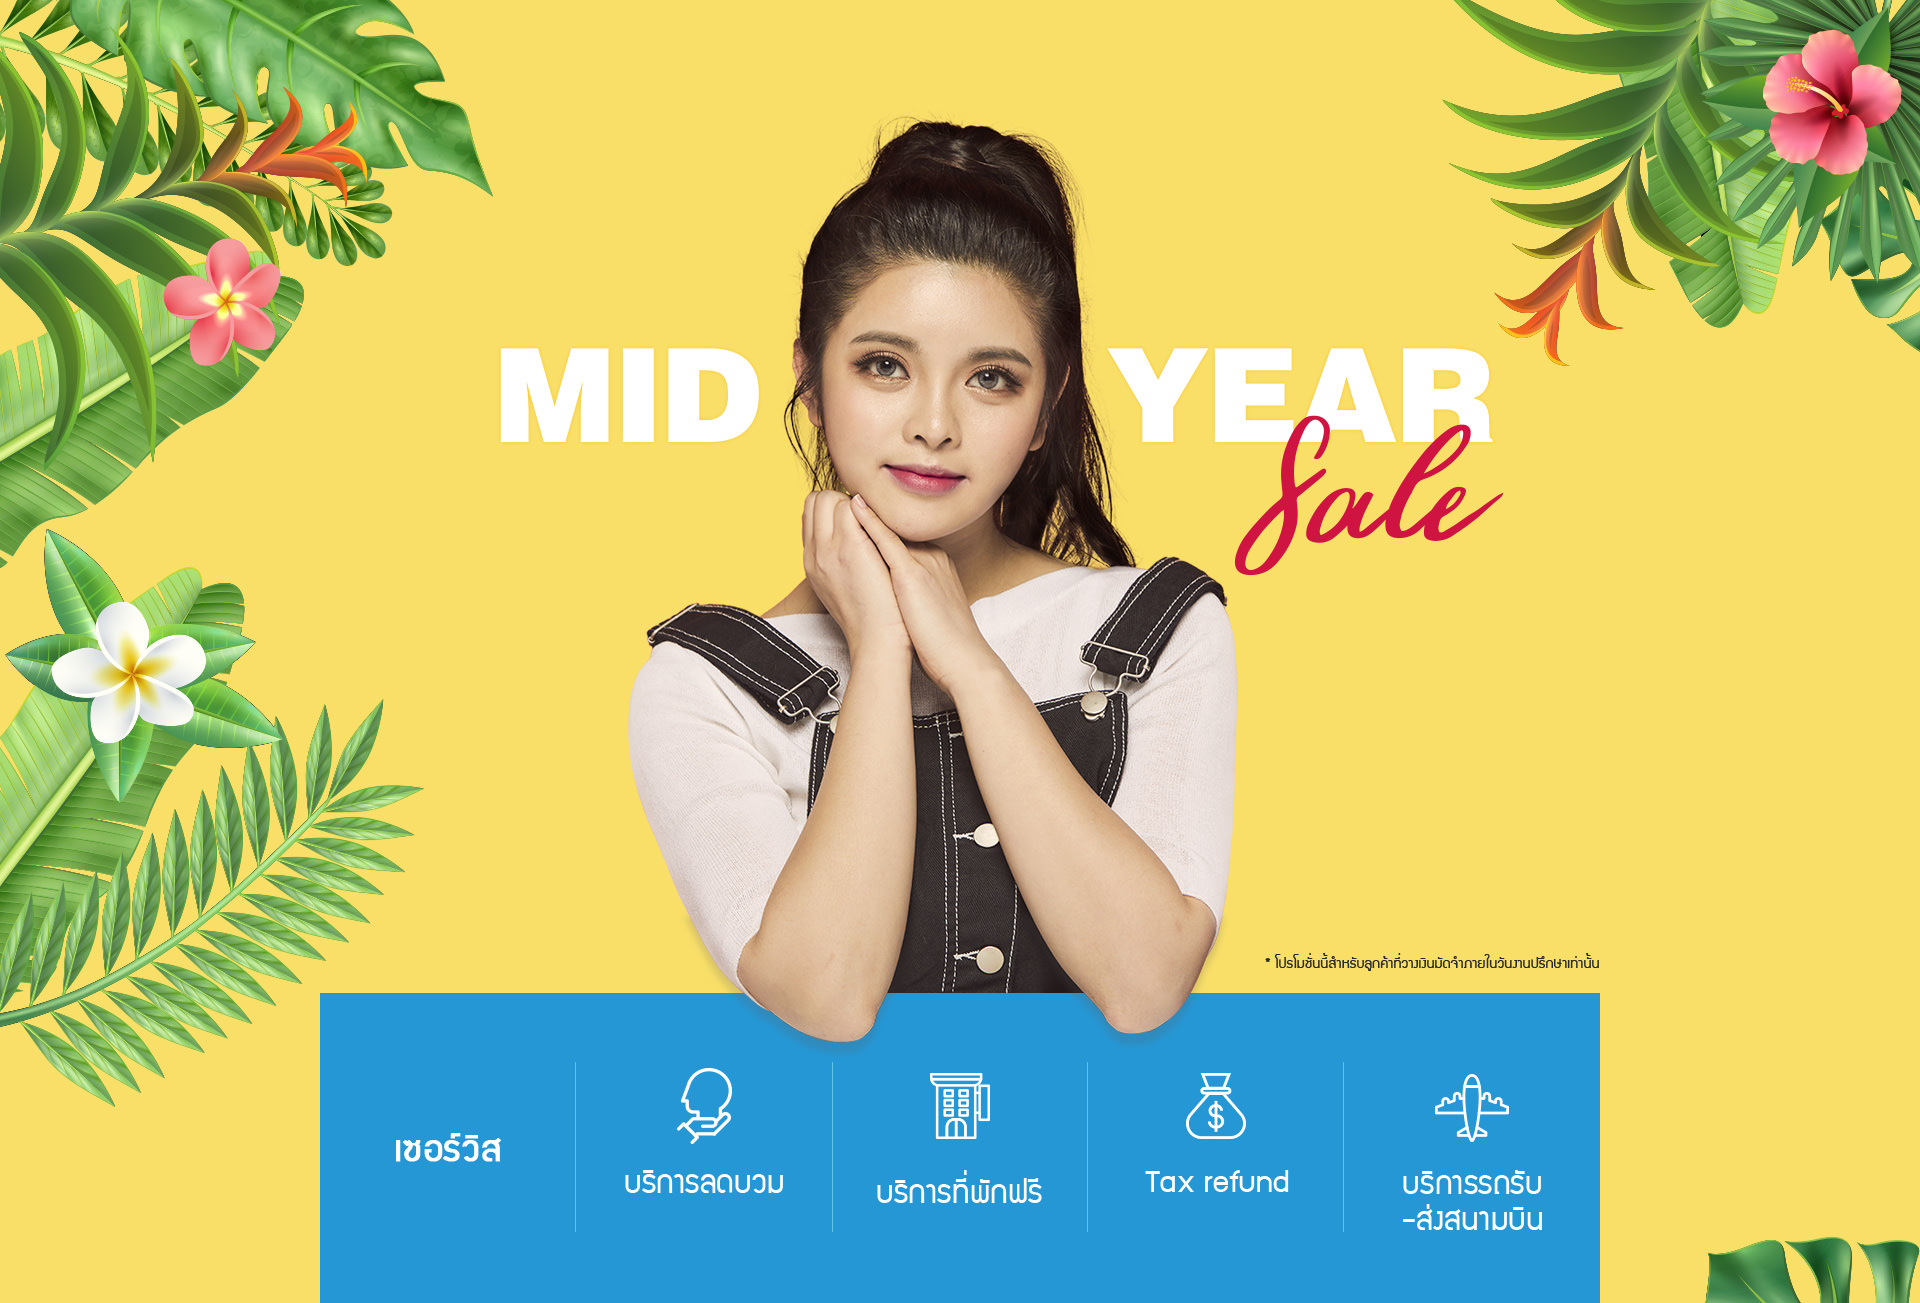 MID YEAR SALE 2019 13-14